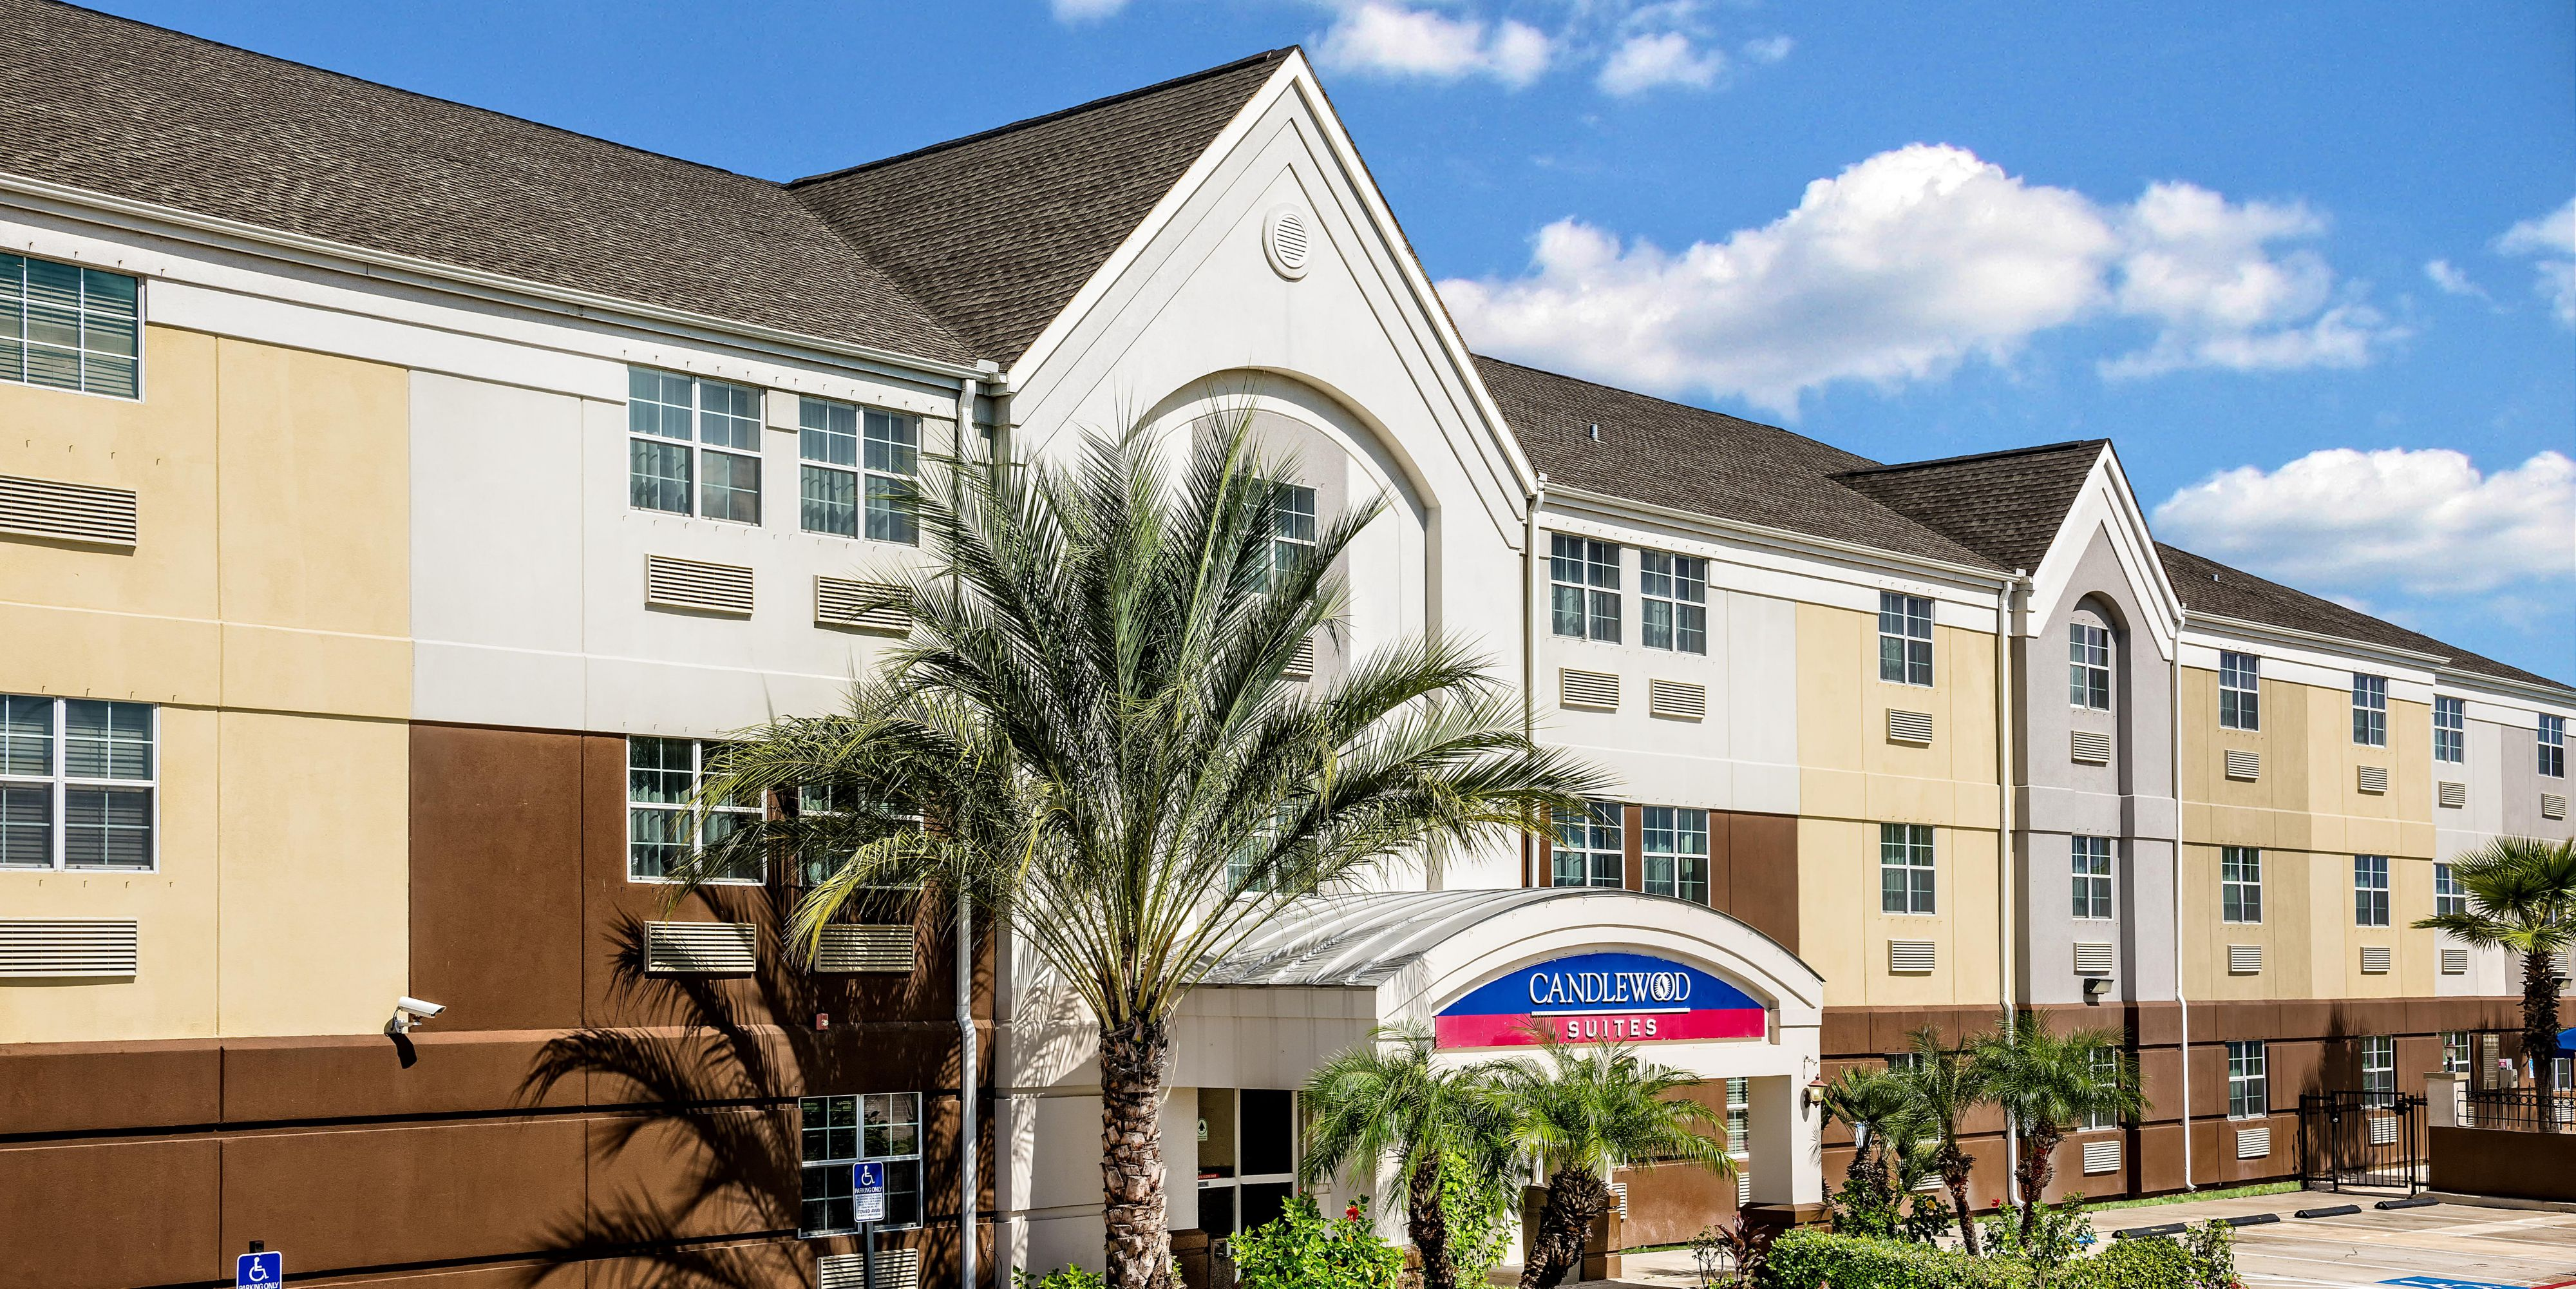 Beautiful Galveston Hotels: Candlewood Suites Galveston   Extended Stay Hotel In  Galveston, Texas Ideas